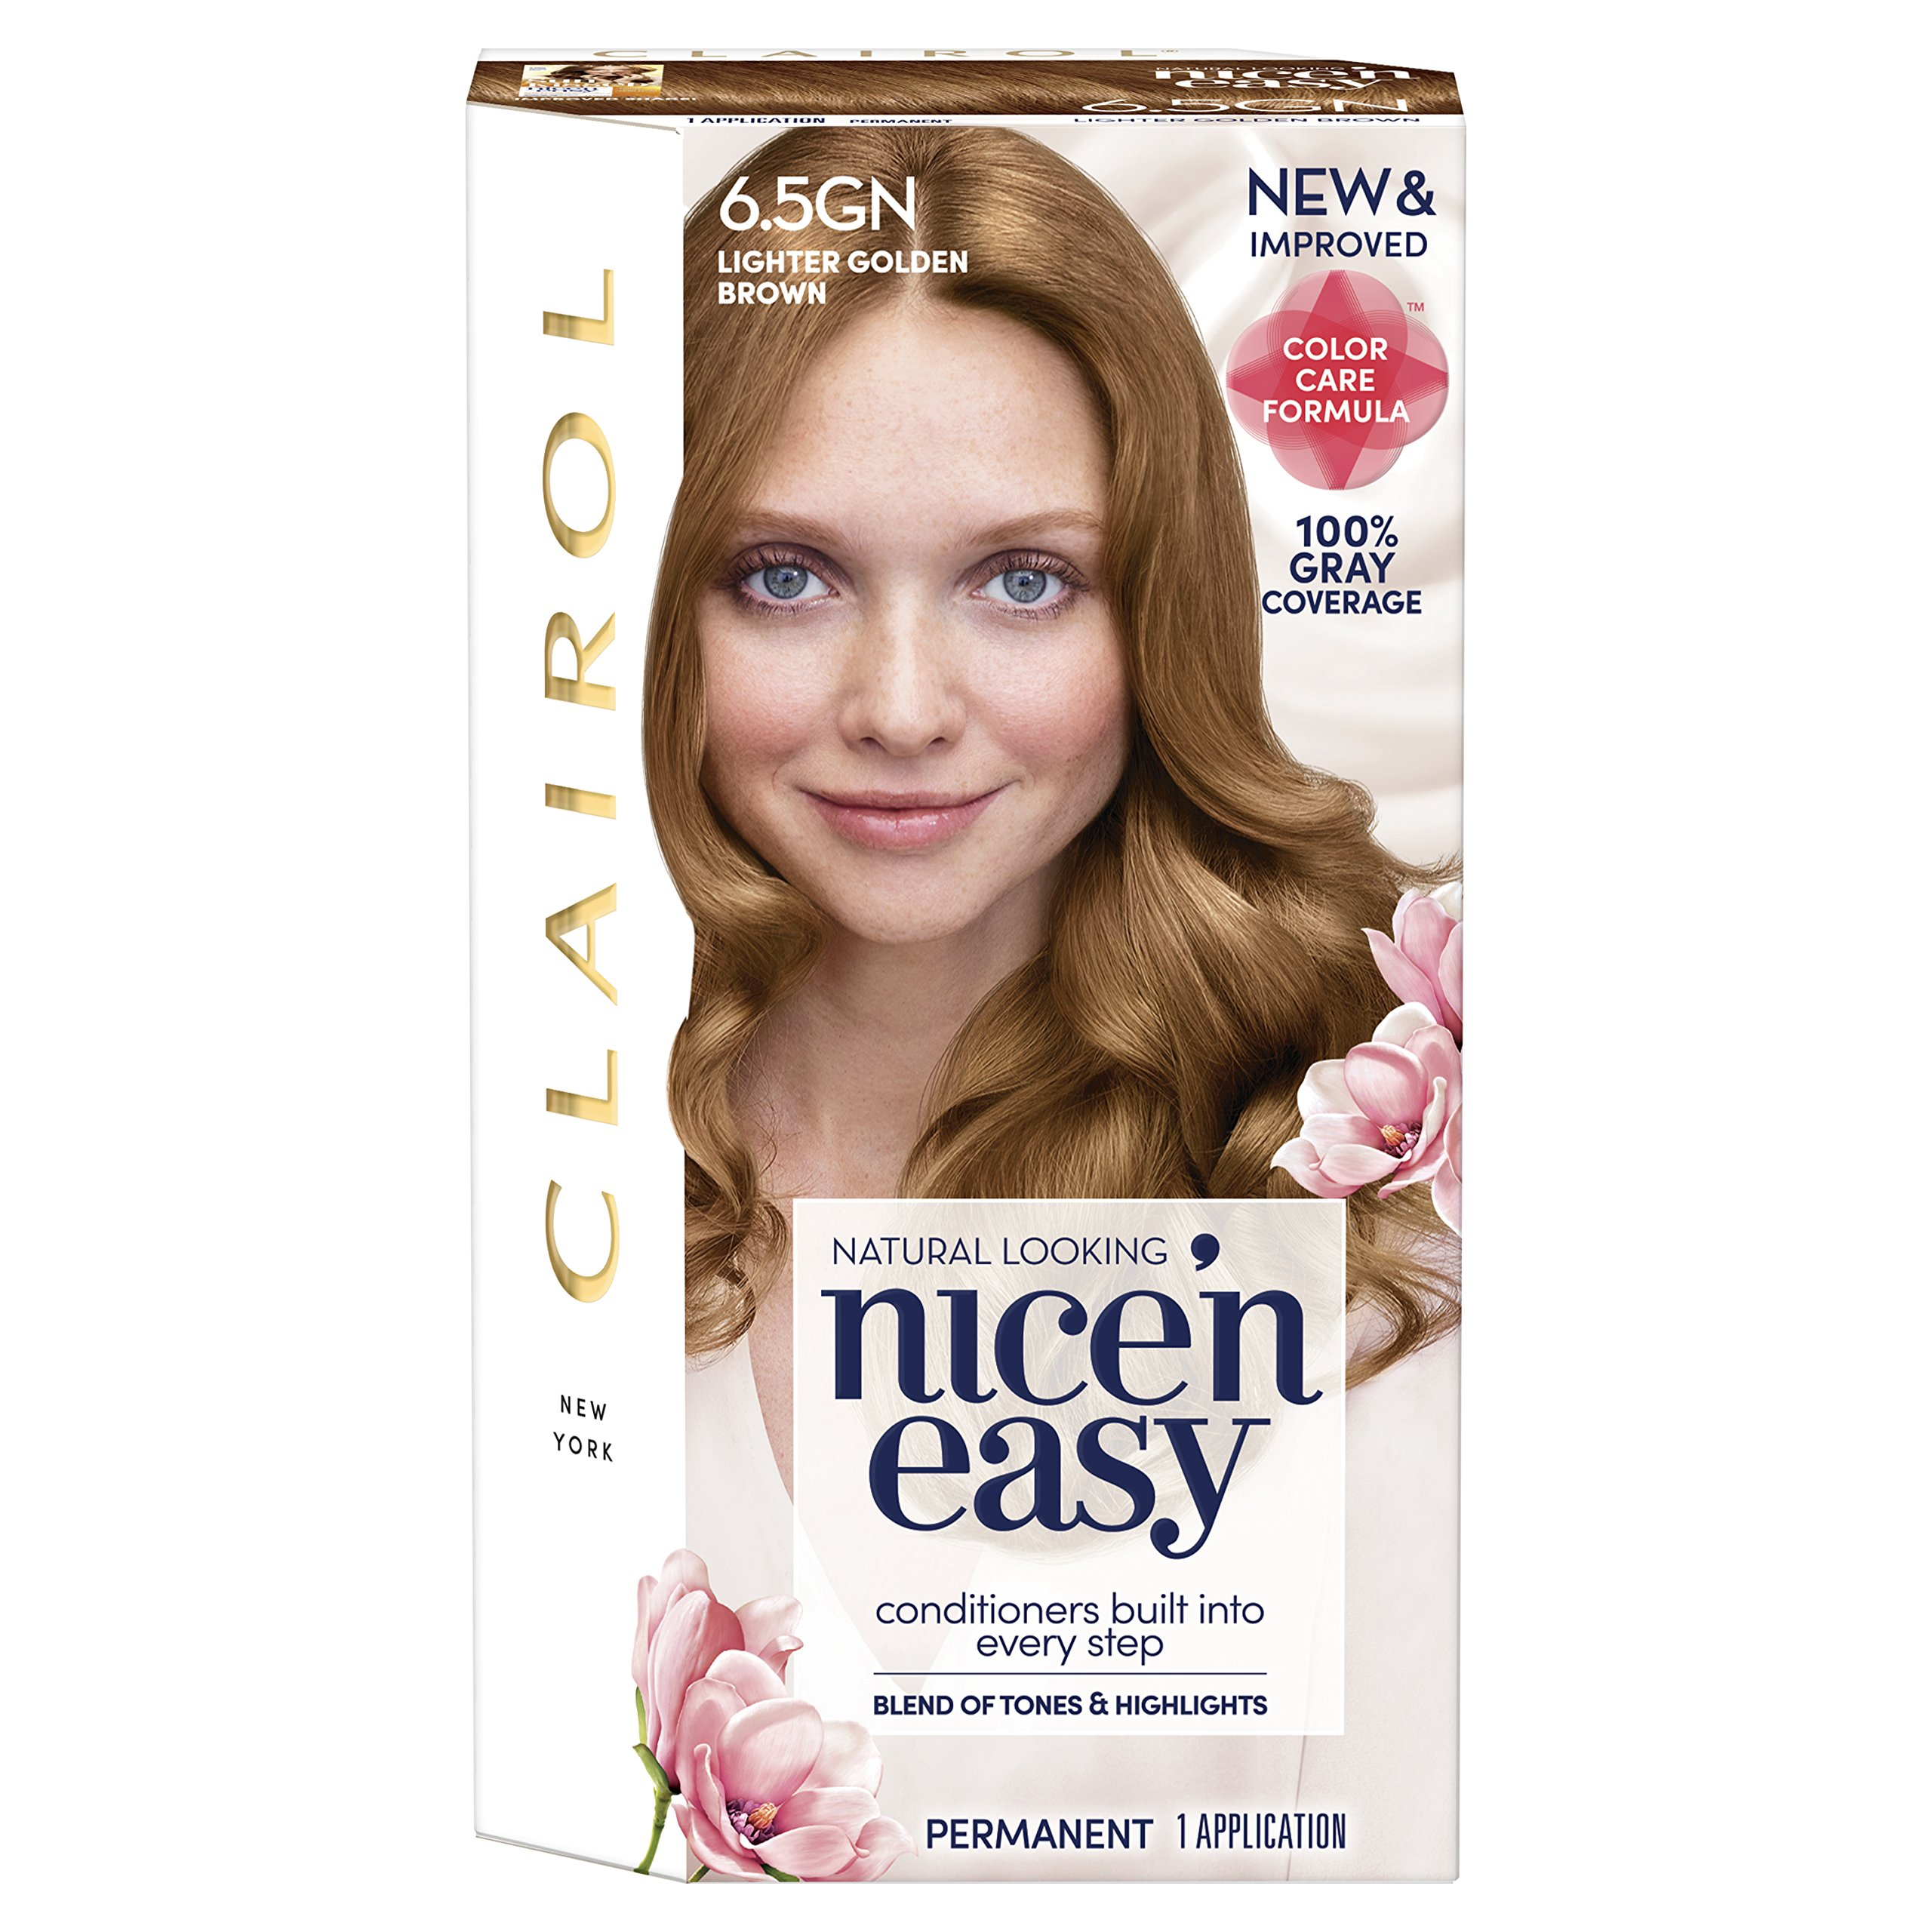 Clairol Nice N Easy 65gn Lighter Golden Brown Permanent Hair